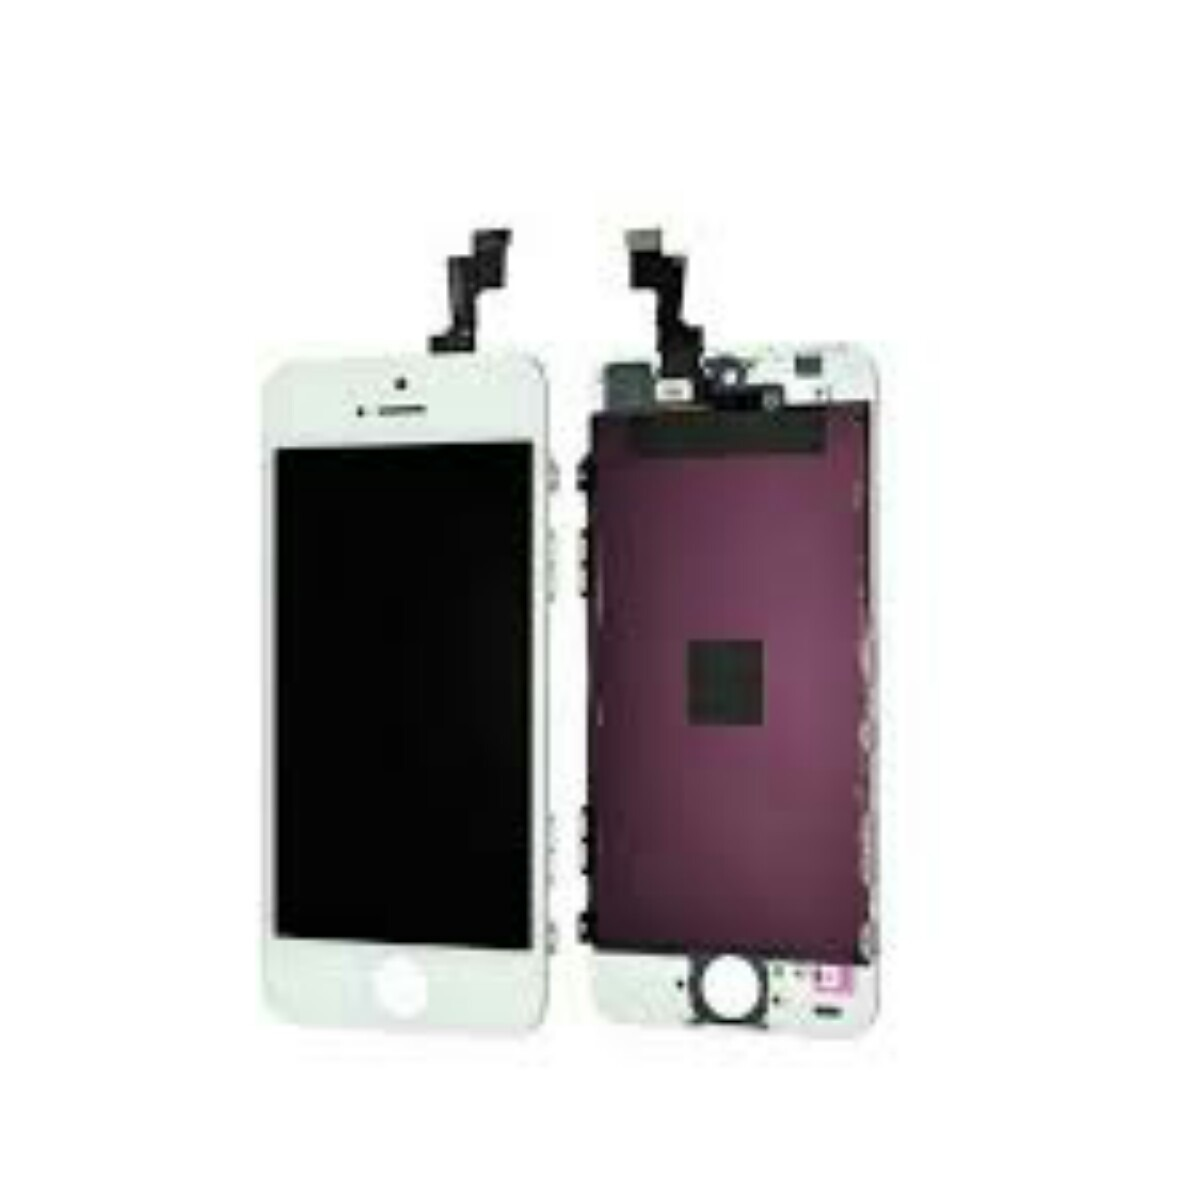 Iphone 5 Libre Precio Pantalla Display Lcd 43 Touch Iphone 5s Envio Gratis 43 Kit